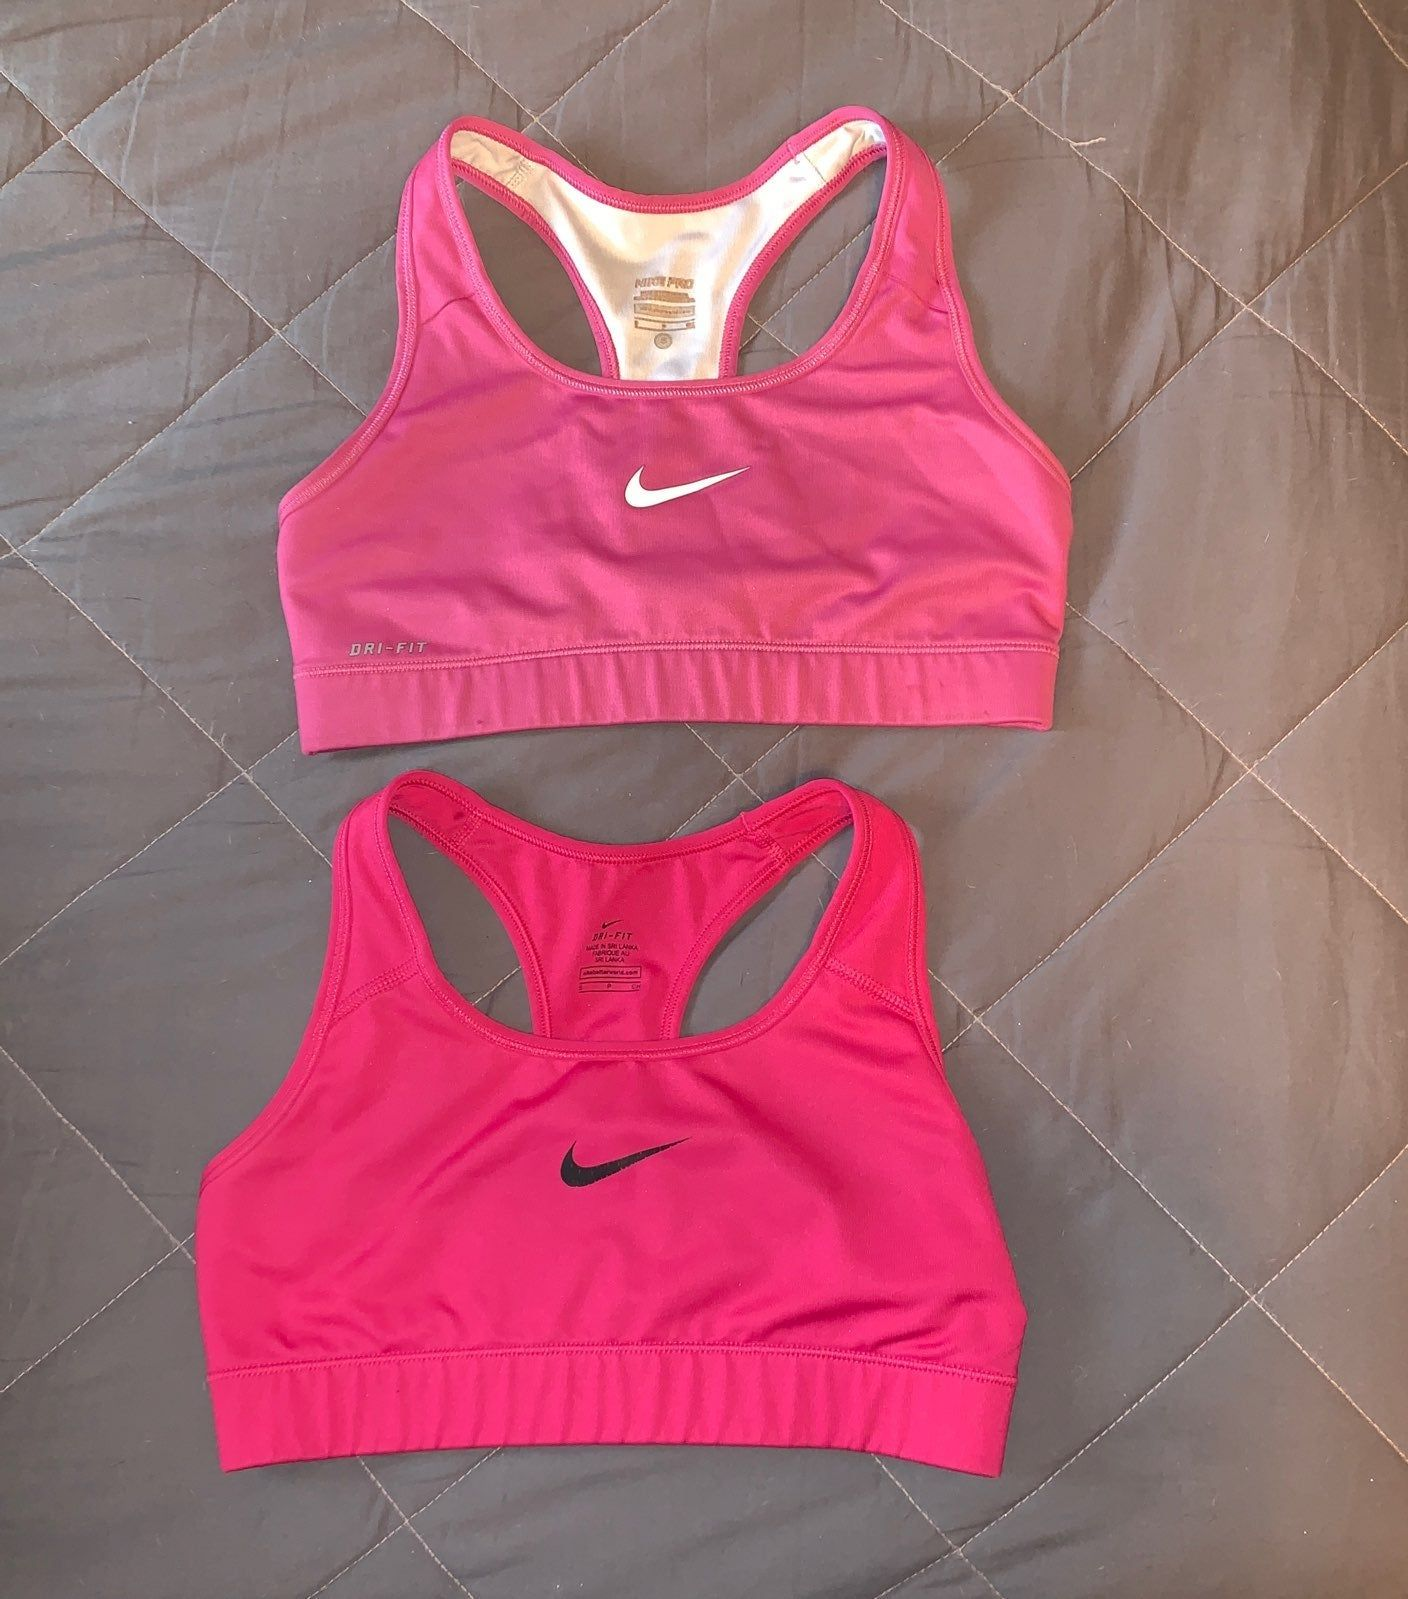 One hot pink, one light pink Nike Sports bra. Both in